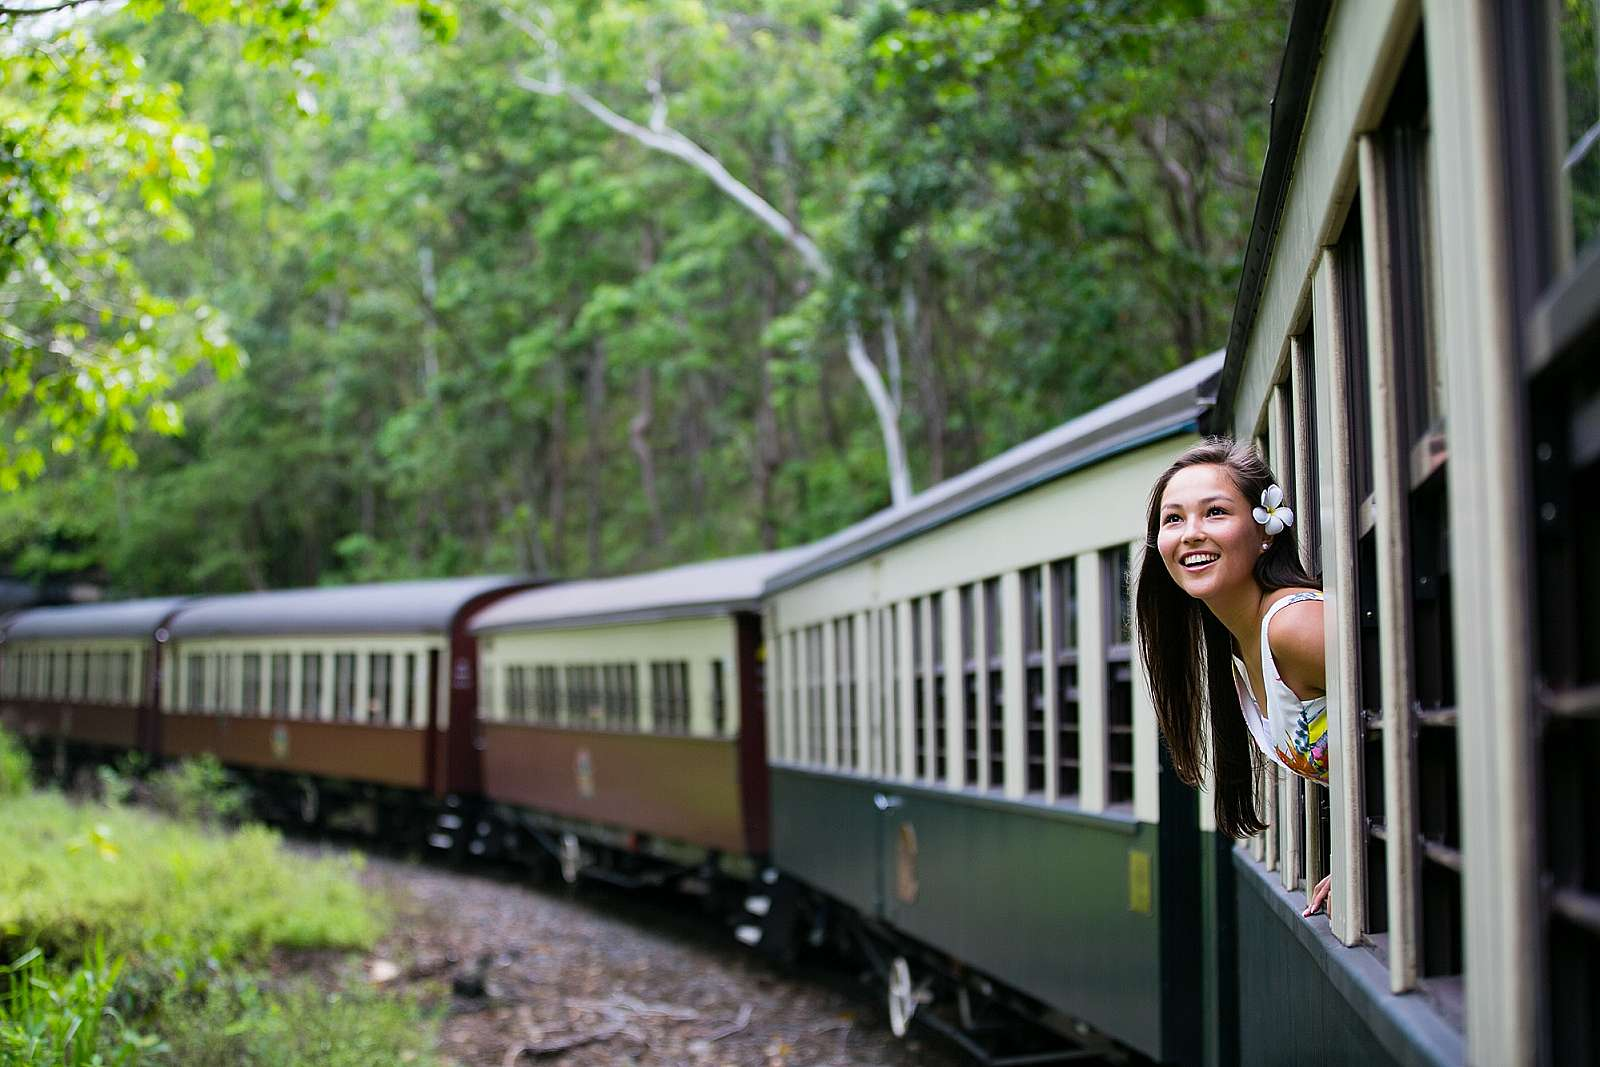 Image for GTS Global Travel Services - Visit Kuranda: Skyrail up / 2pm Train back